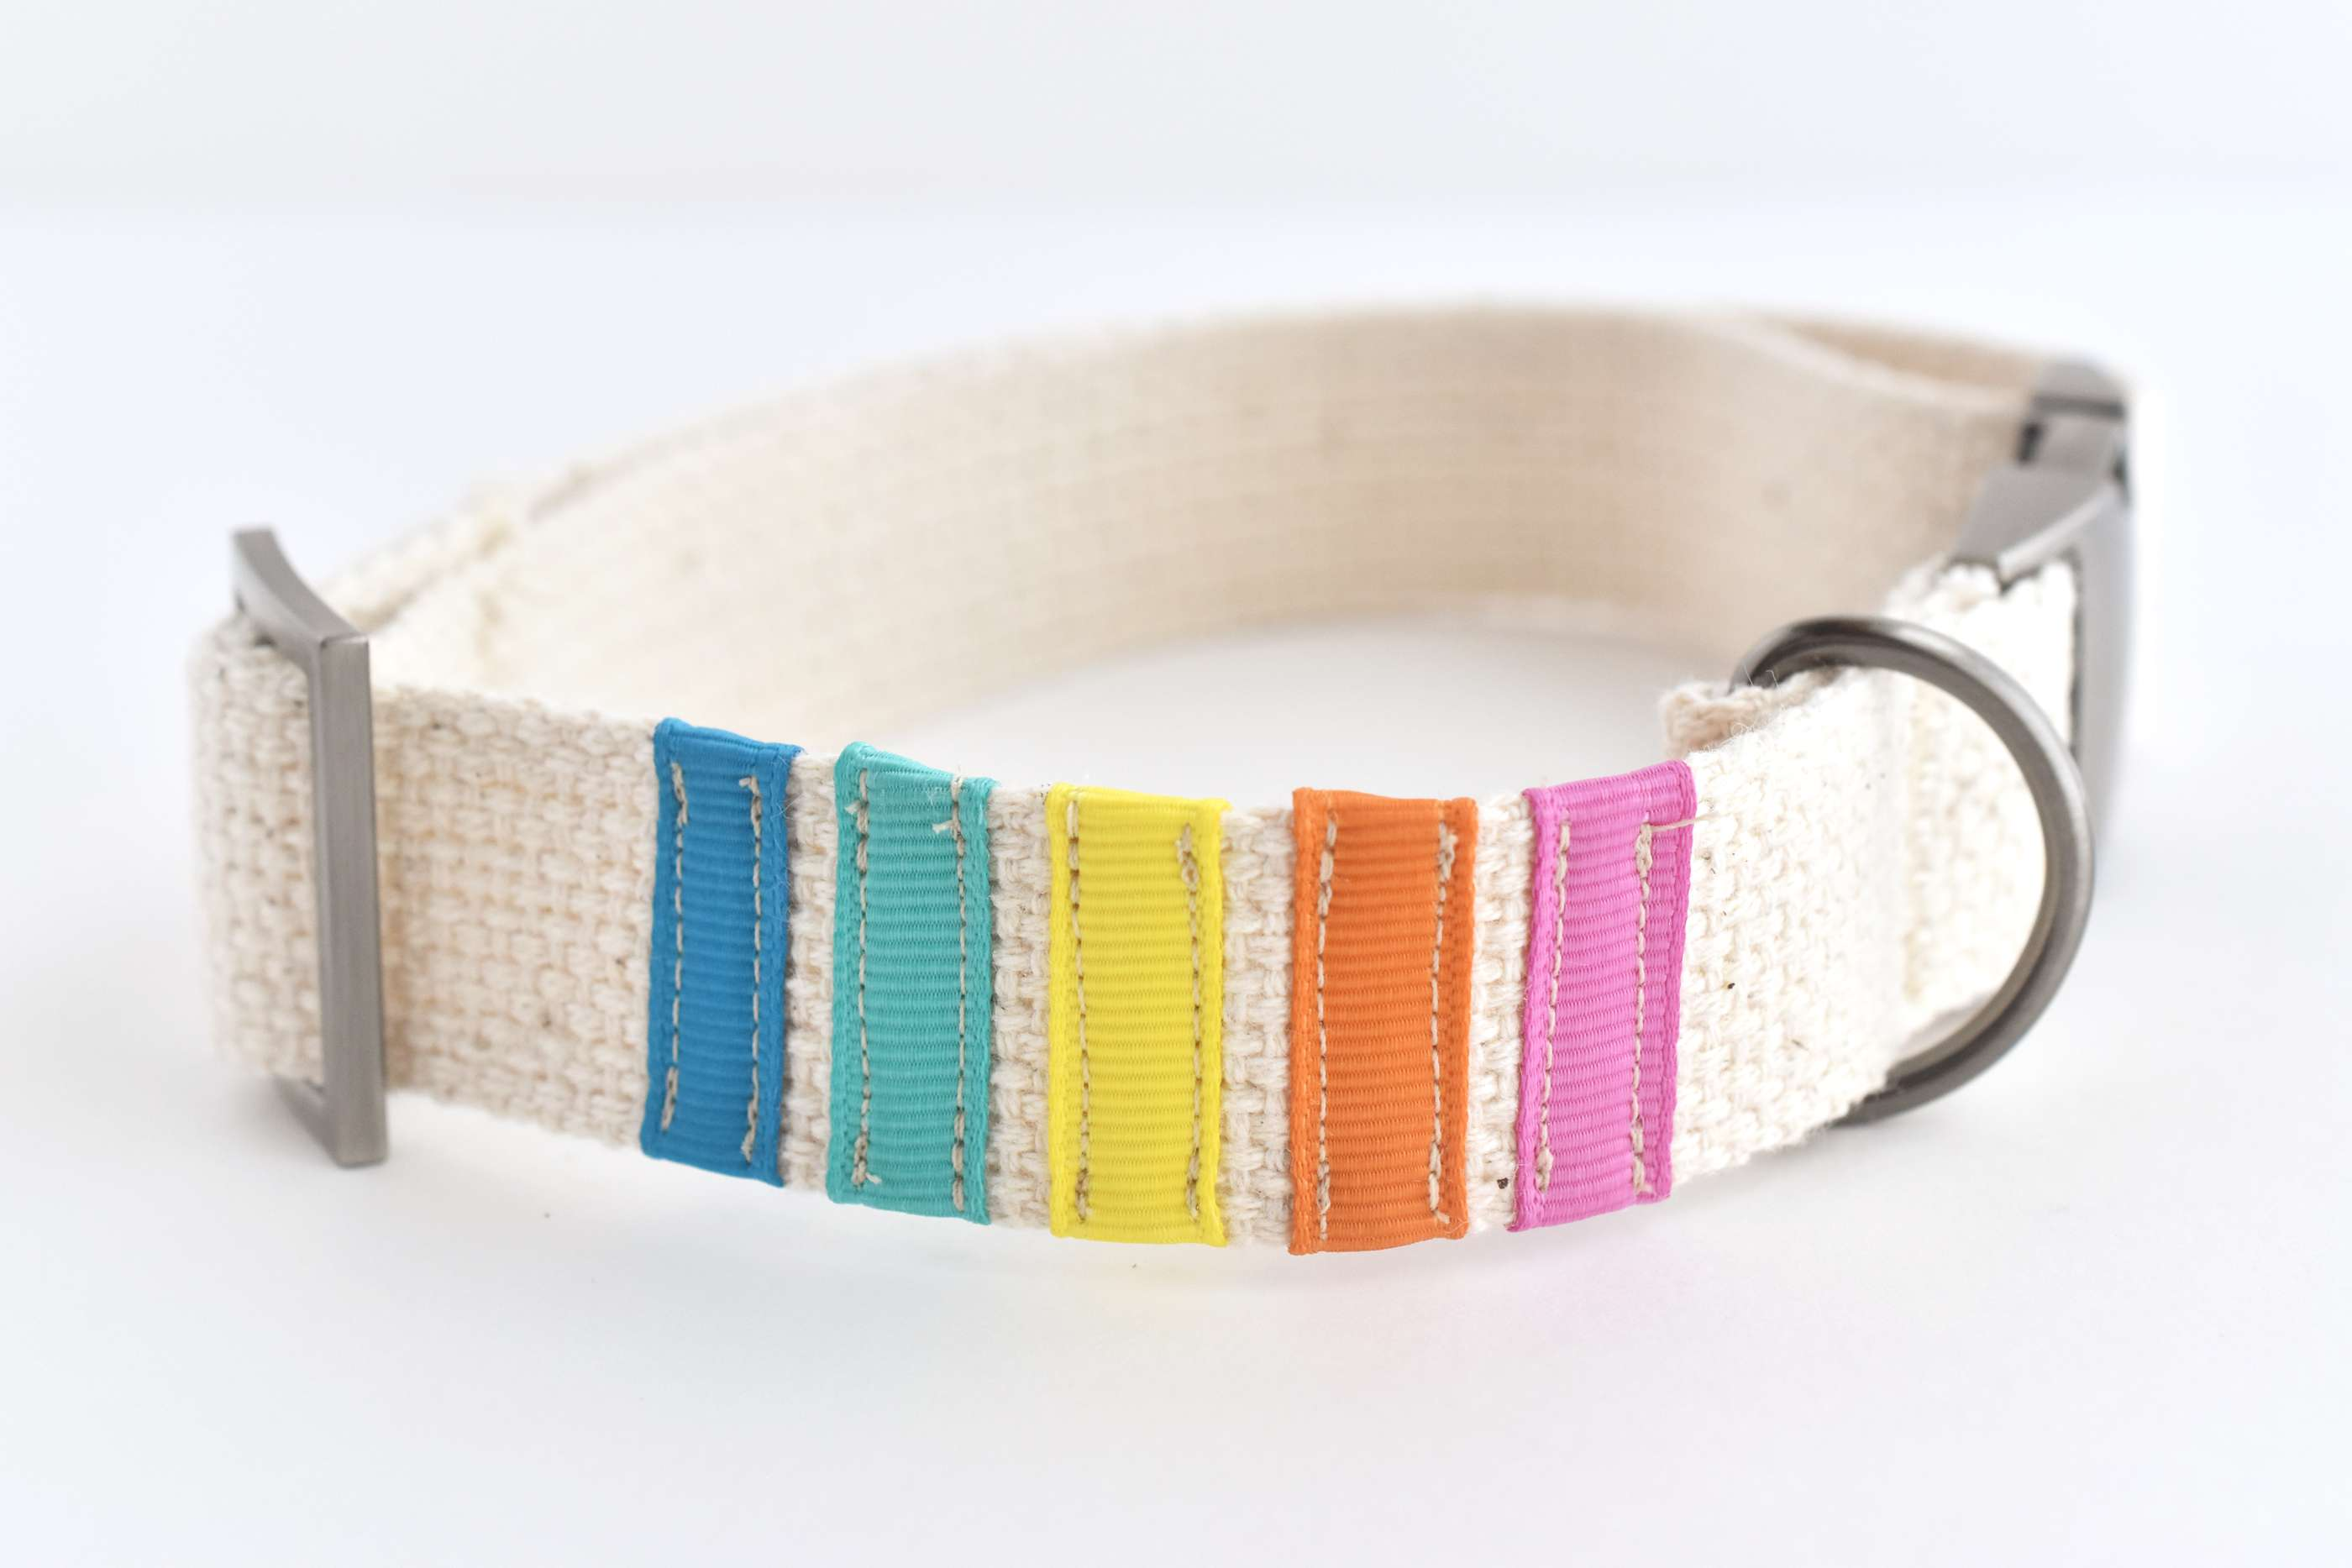 DIY Dog Collar Decorated With Ribbons